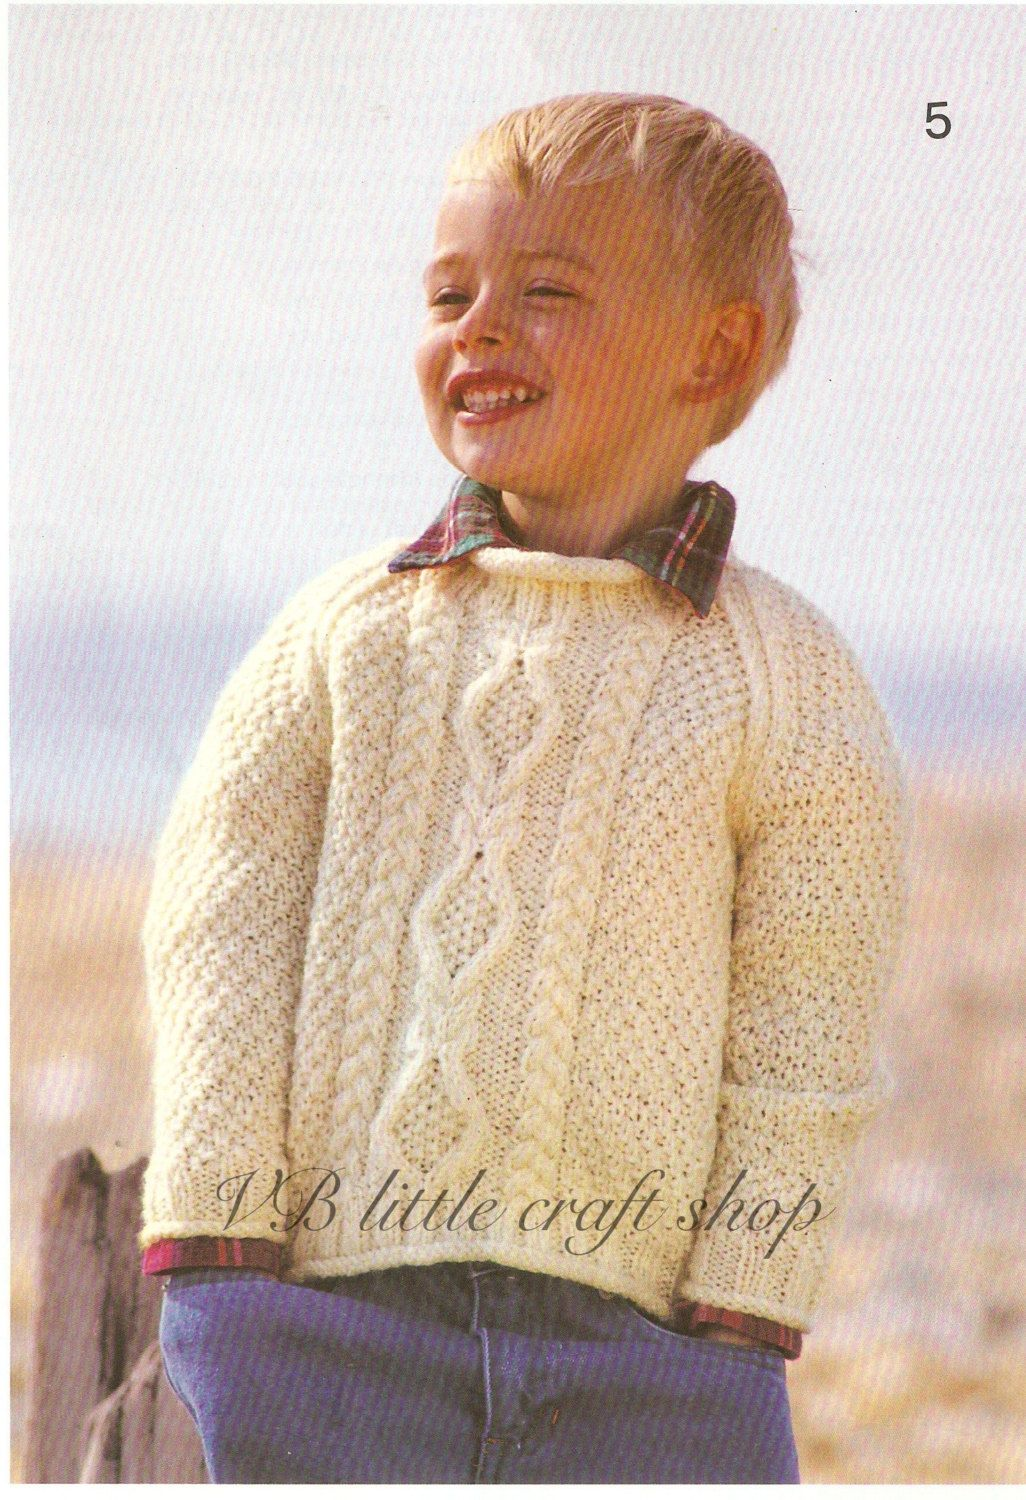 Toddlers aran sweater knitting pattern instant pdf download toddlers aran sweater knitting pattern instant pdf download bankloansurffo Gallery